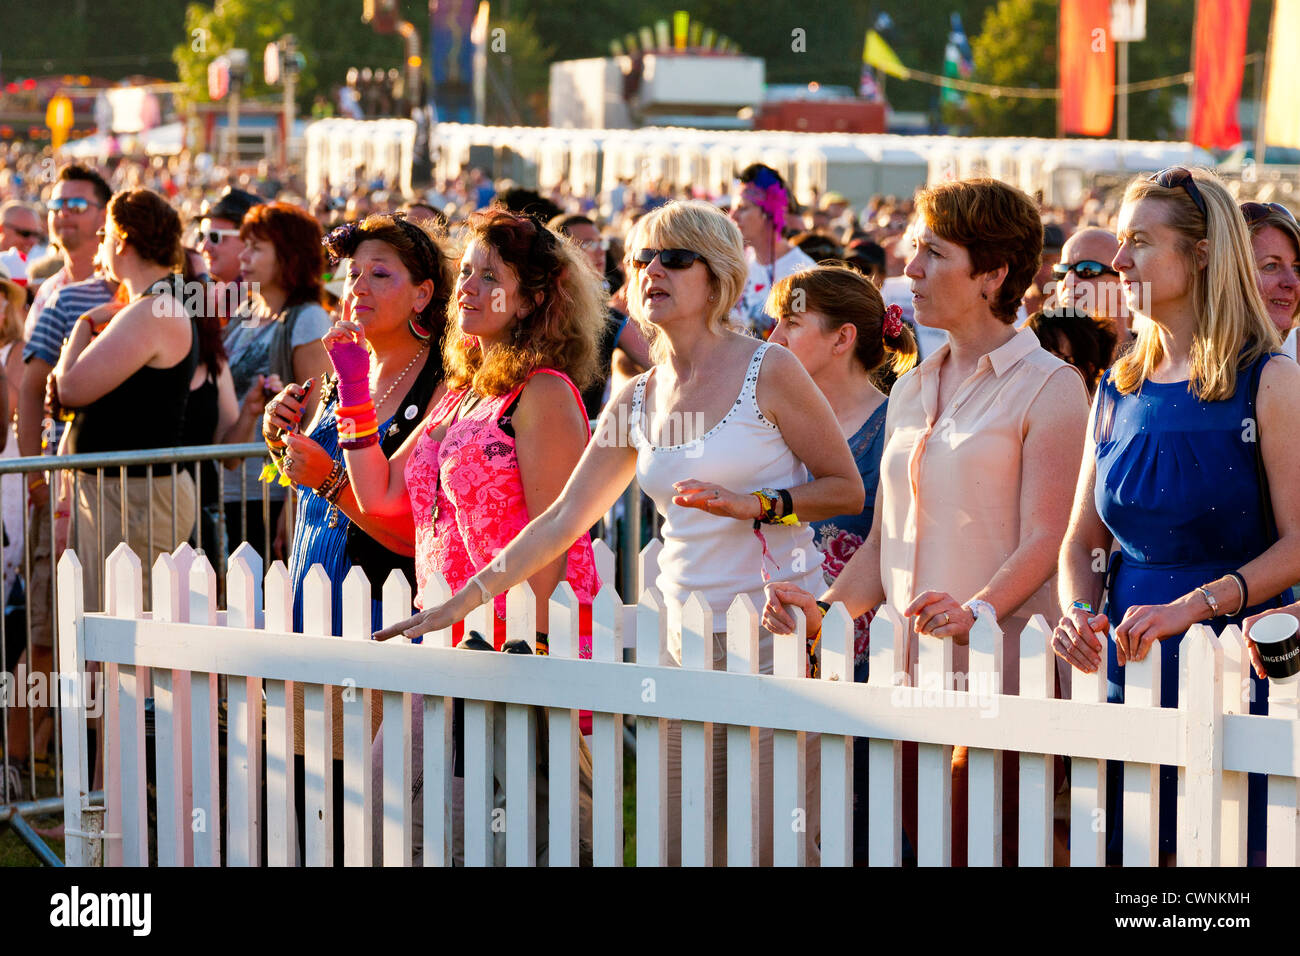 Part of the VIP section of the huge crowd at the Rewind Festival Henley on Thames 2012. JMH6060 - Stock Image